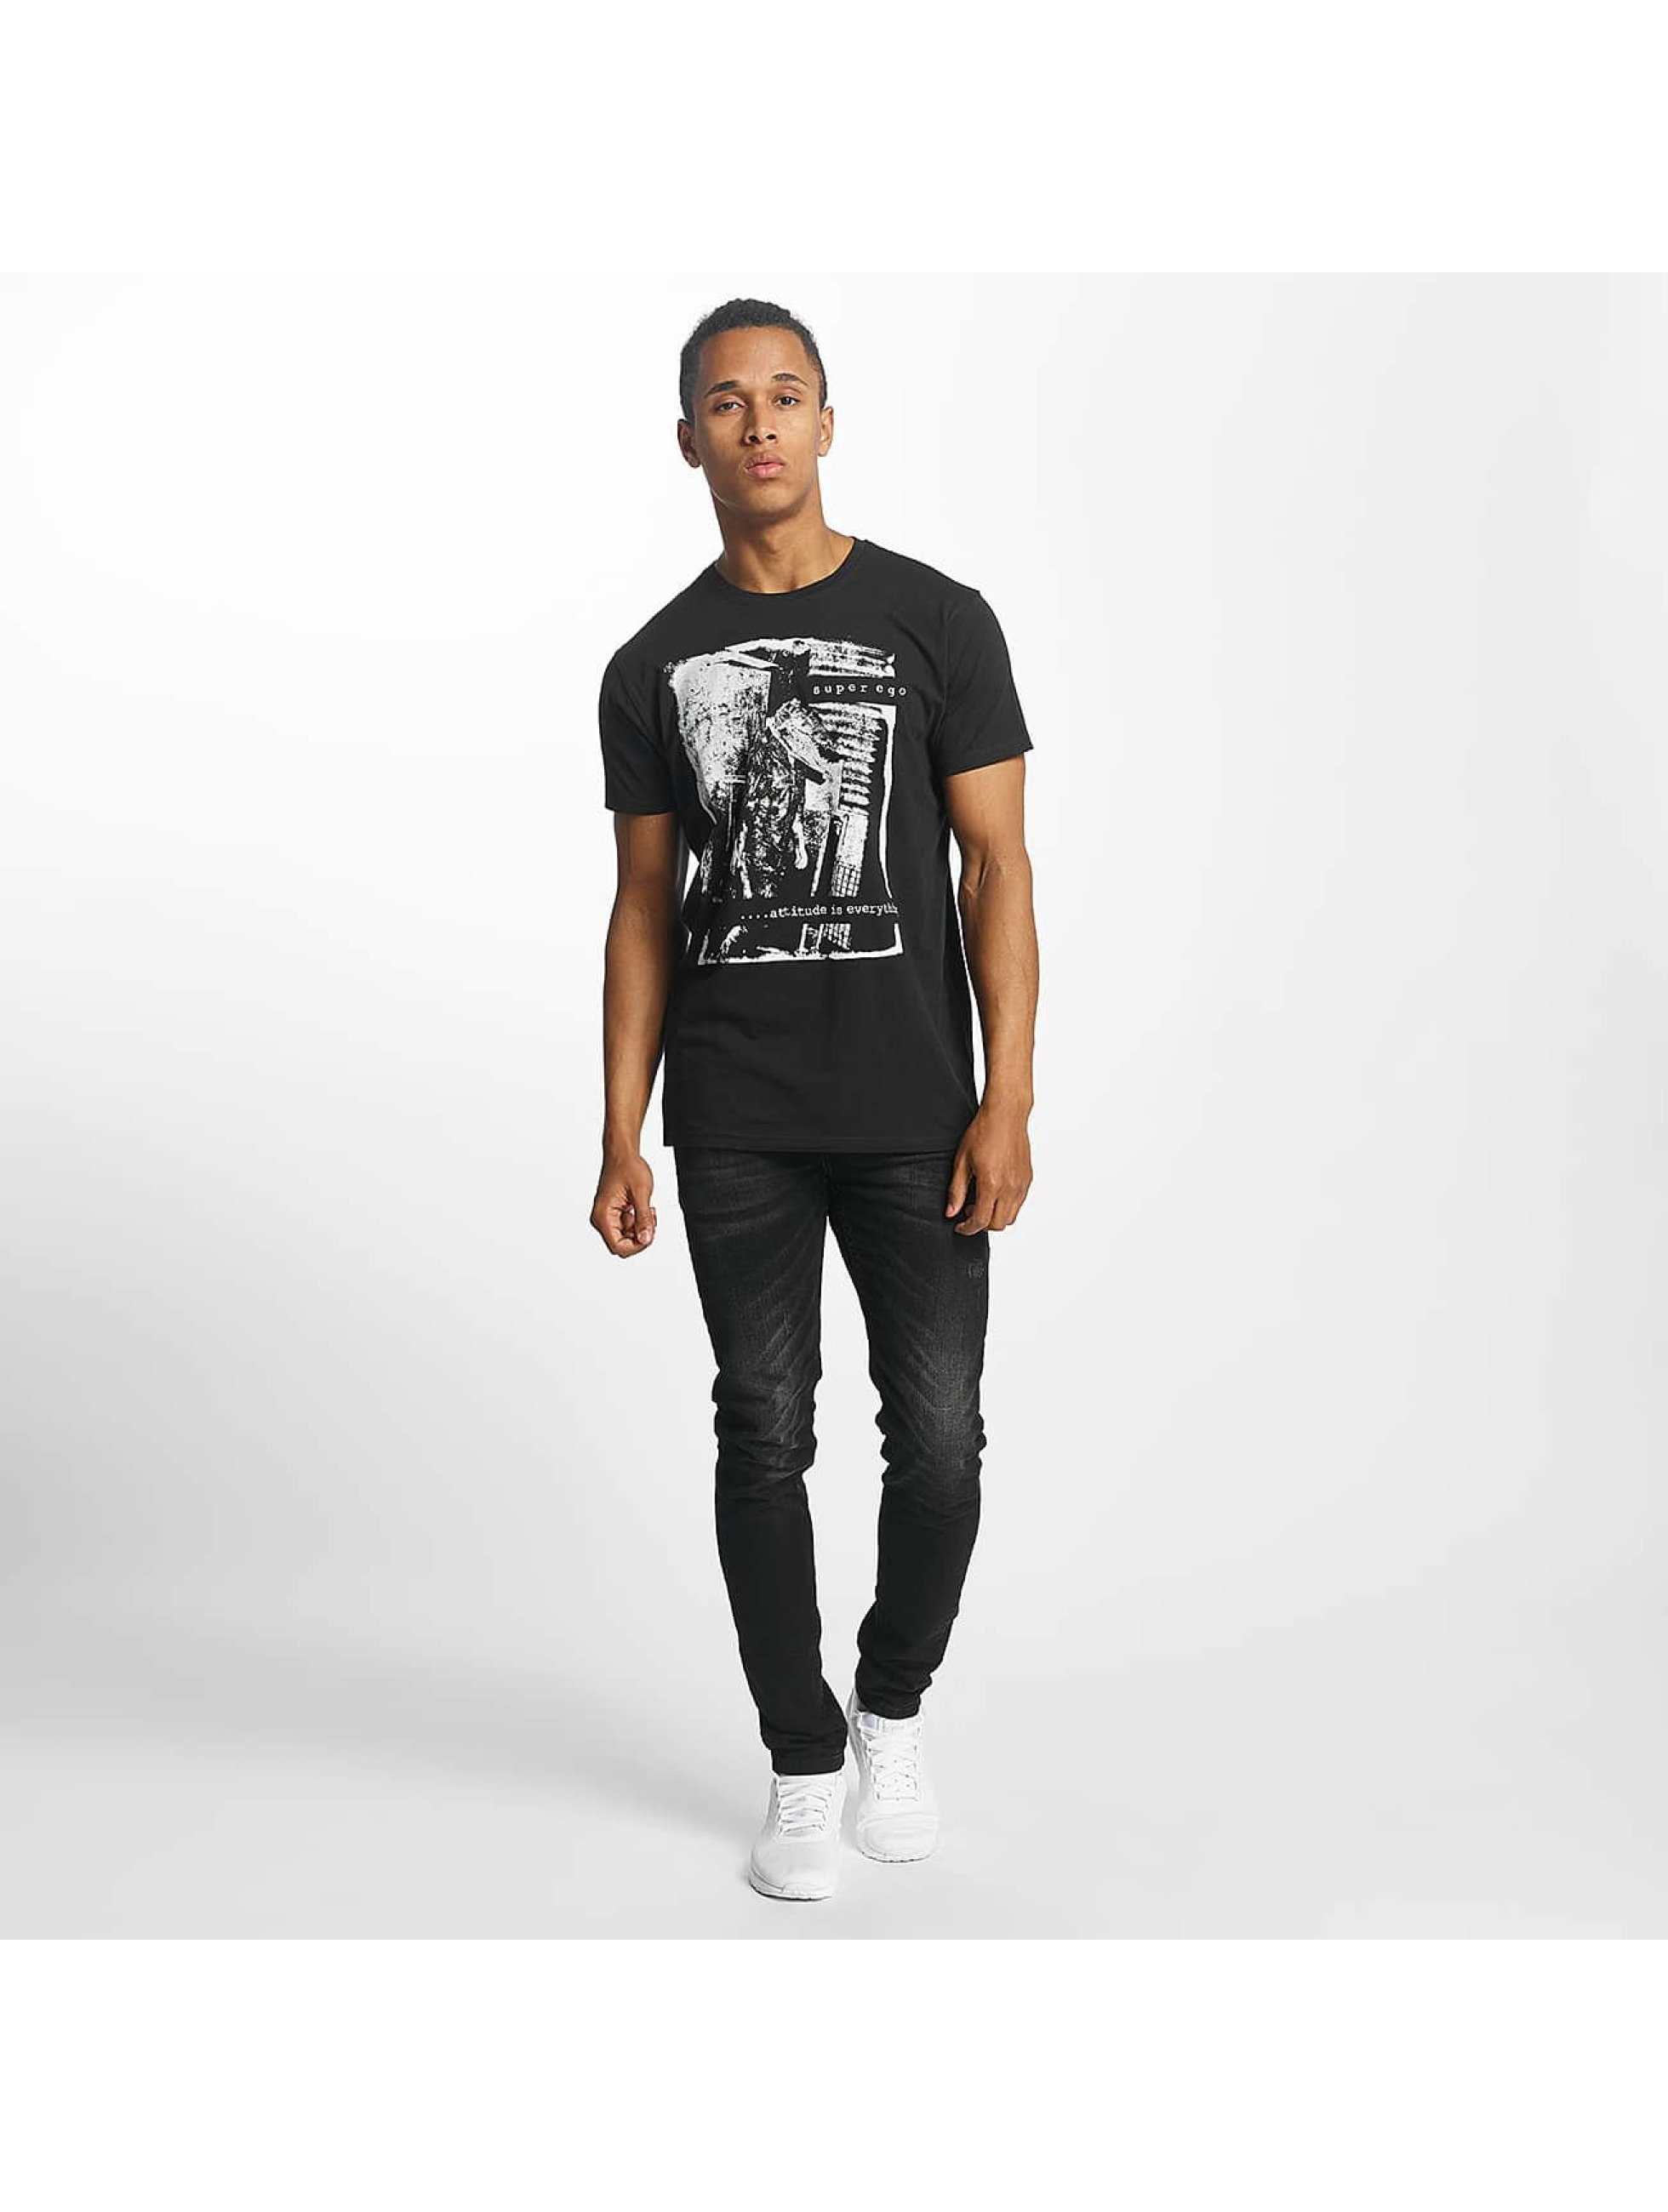 Paris Premium t-shirt Attitude is everything zwart